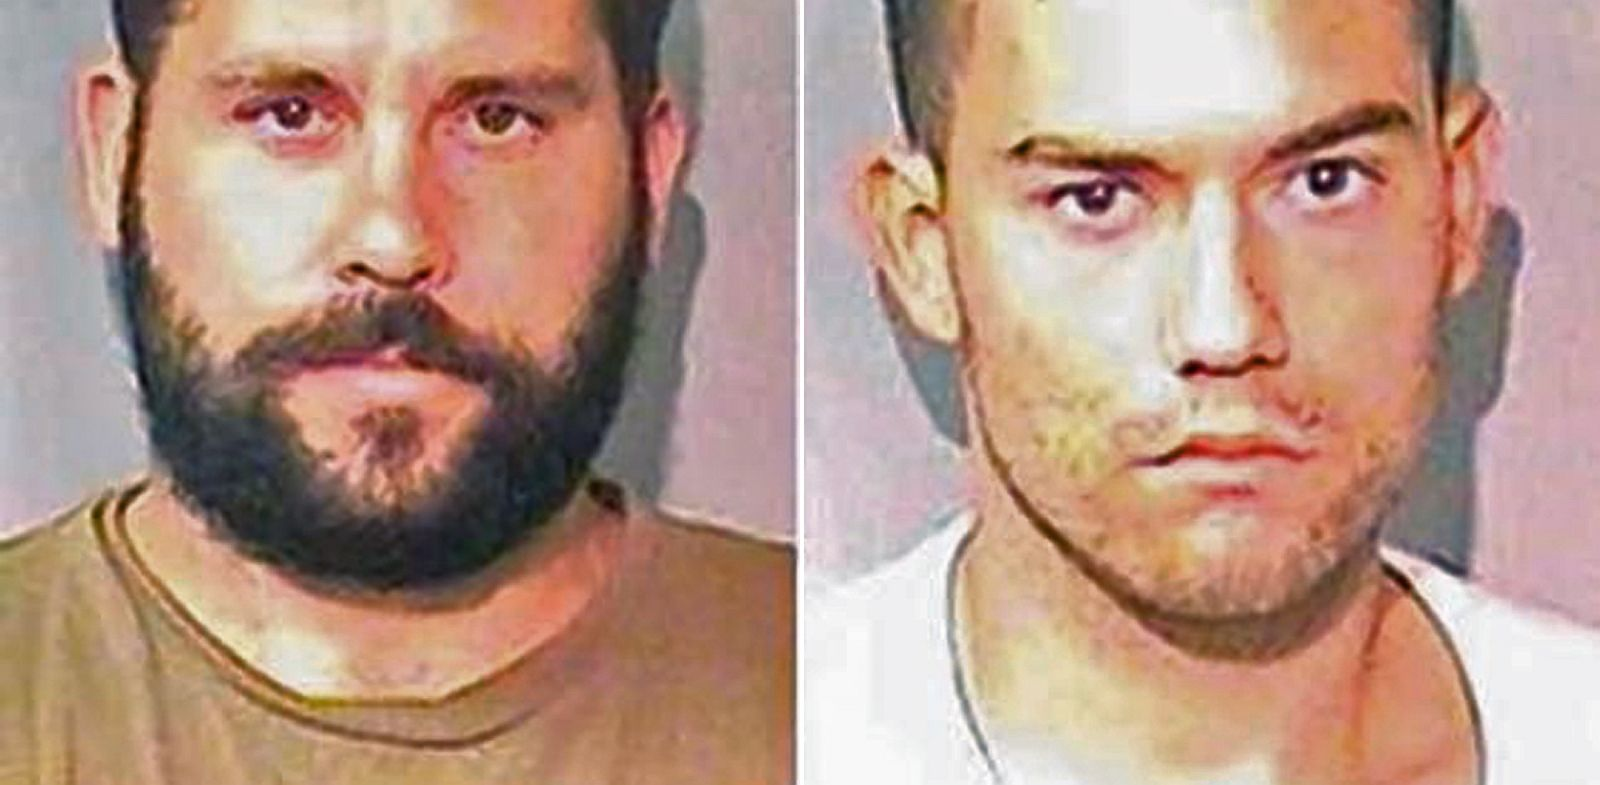 PHOTO: Ryan Balletto and Patrick Pearmain mugshots